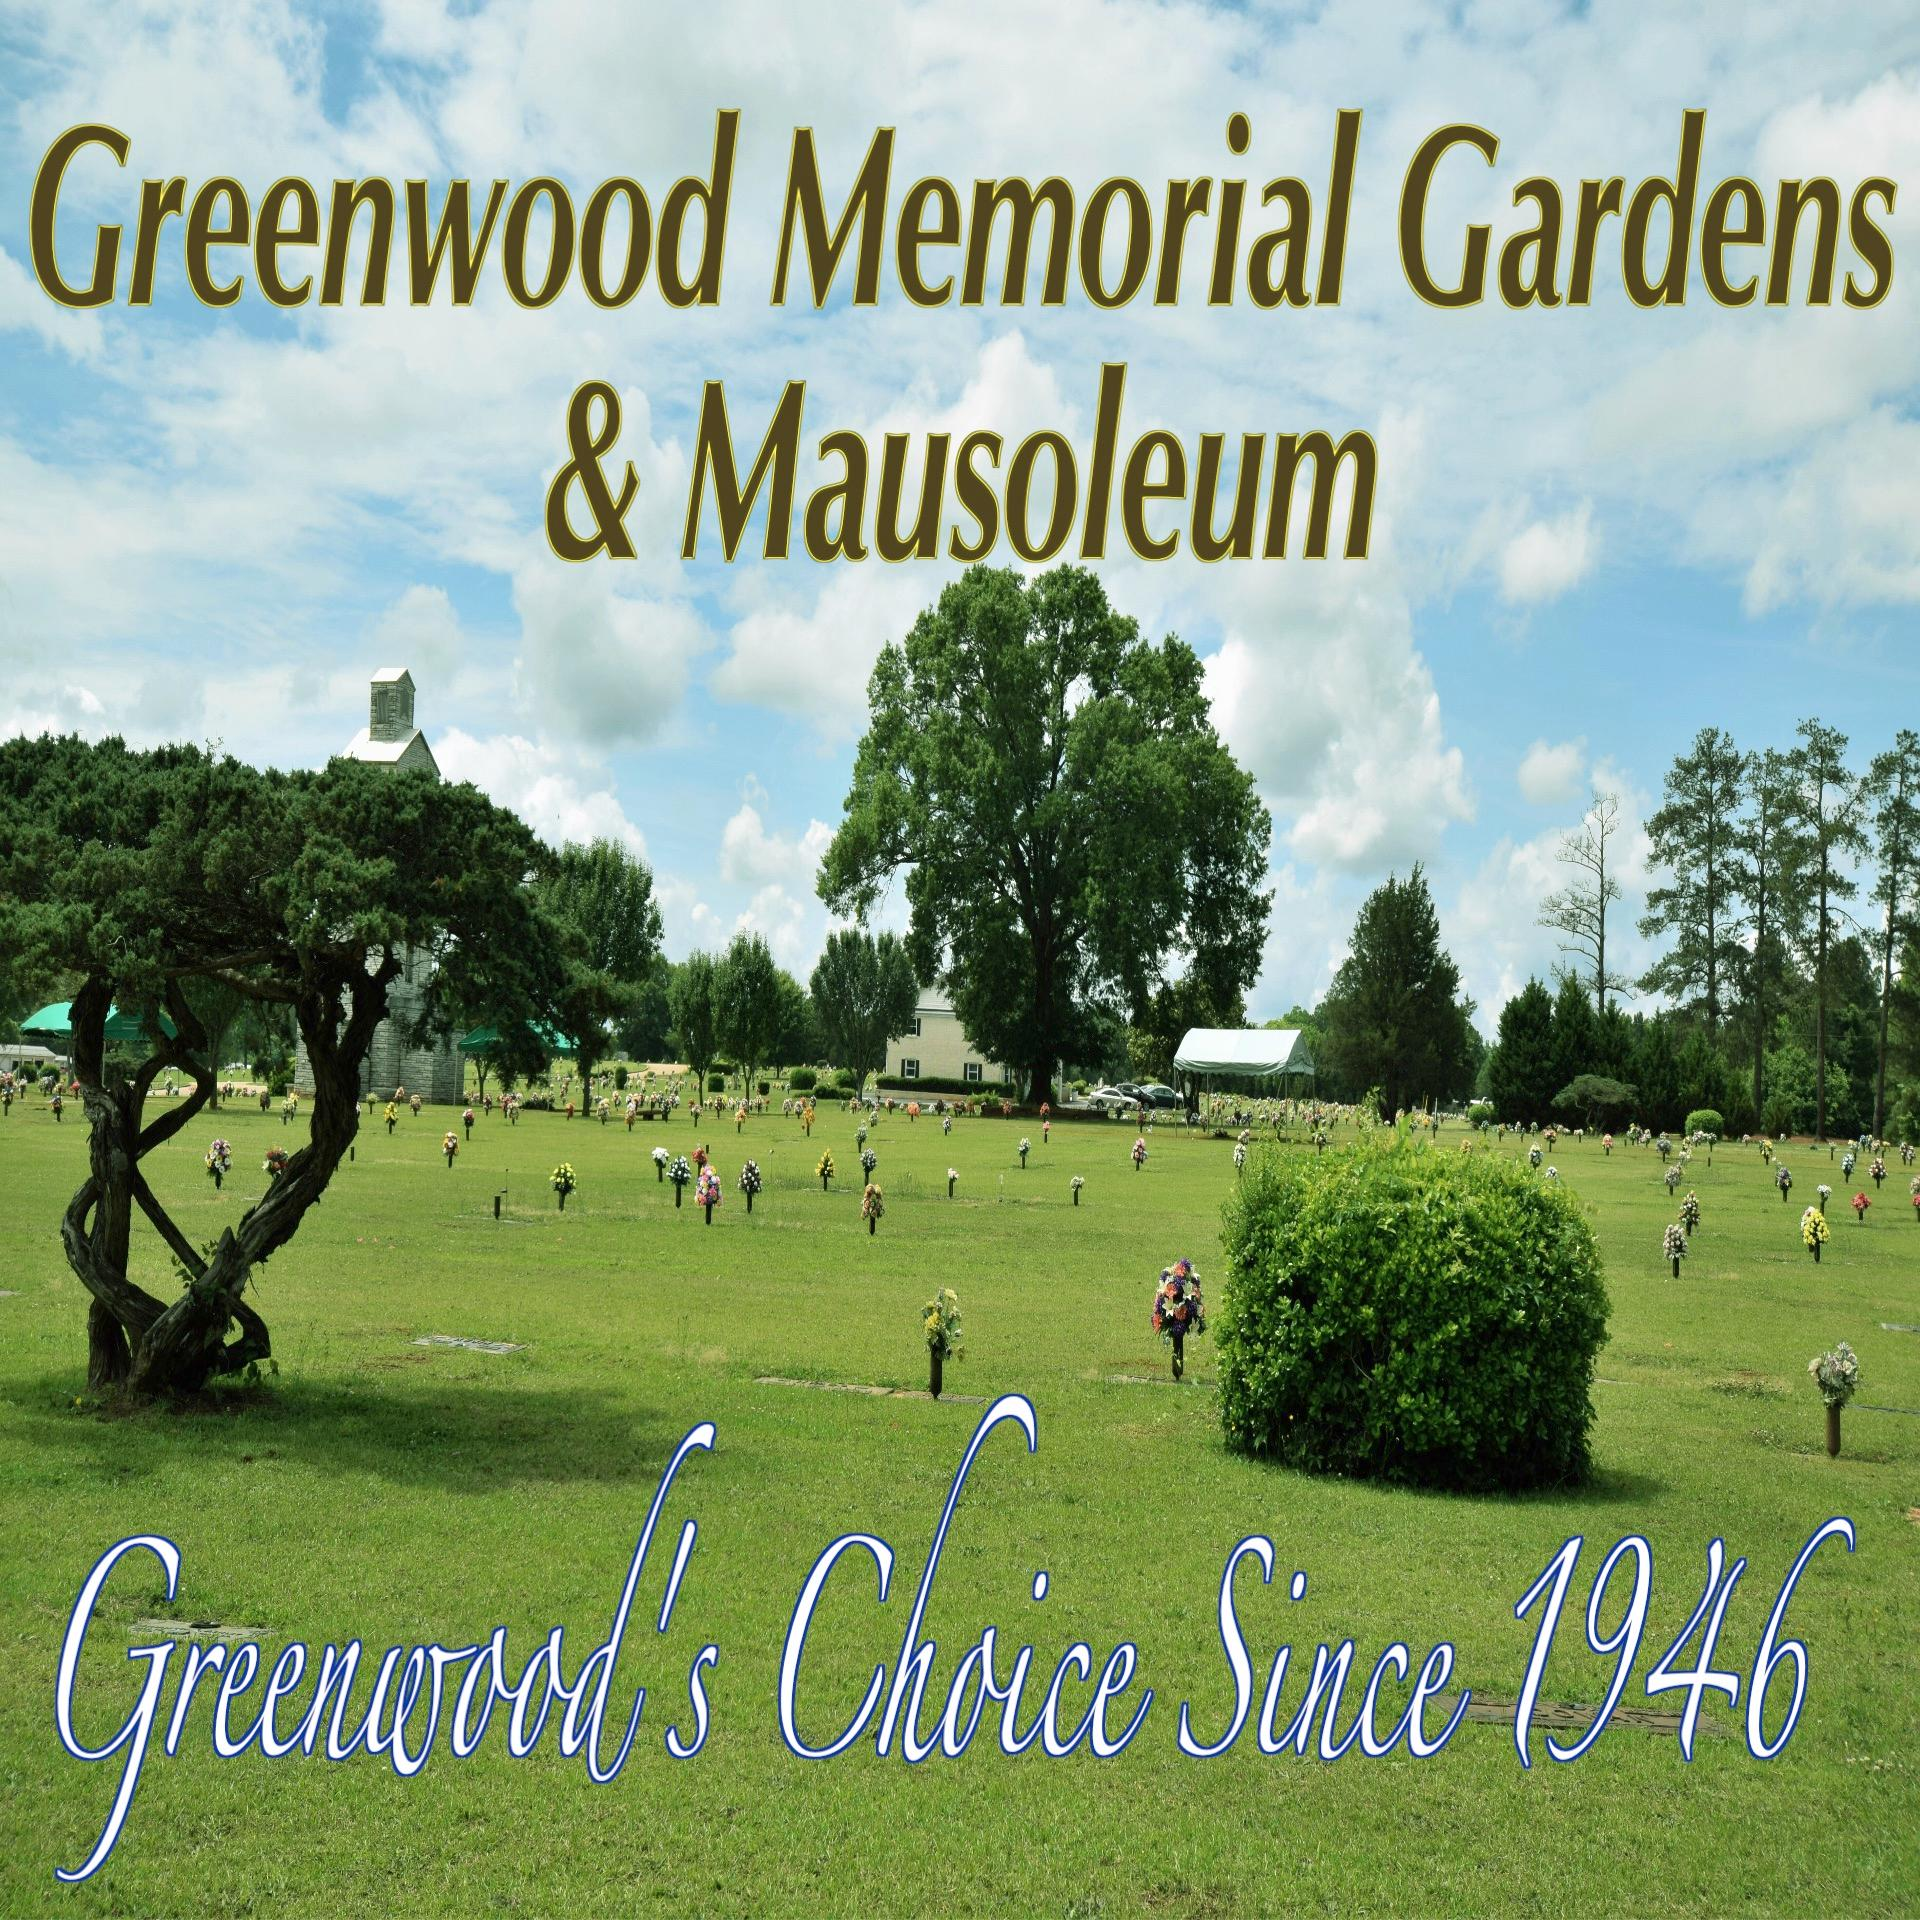 Greenwood Memorial Gardens & Mausoleum image 10